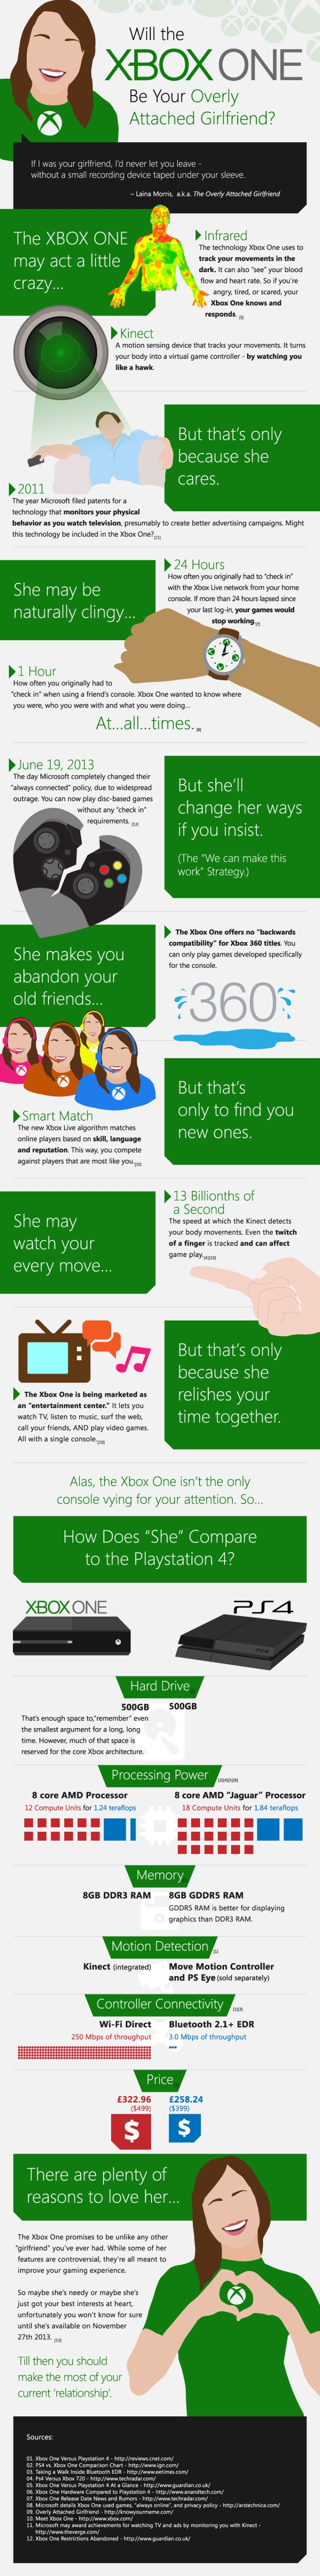 overly-attached-xbox-one-infographic